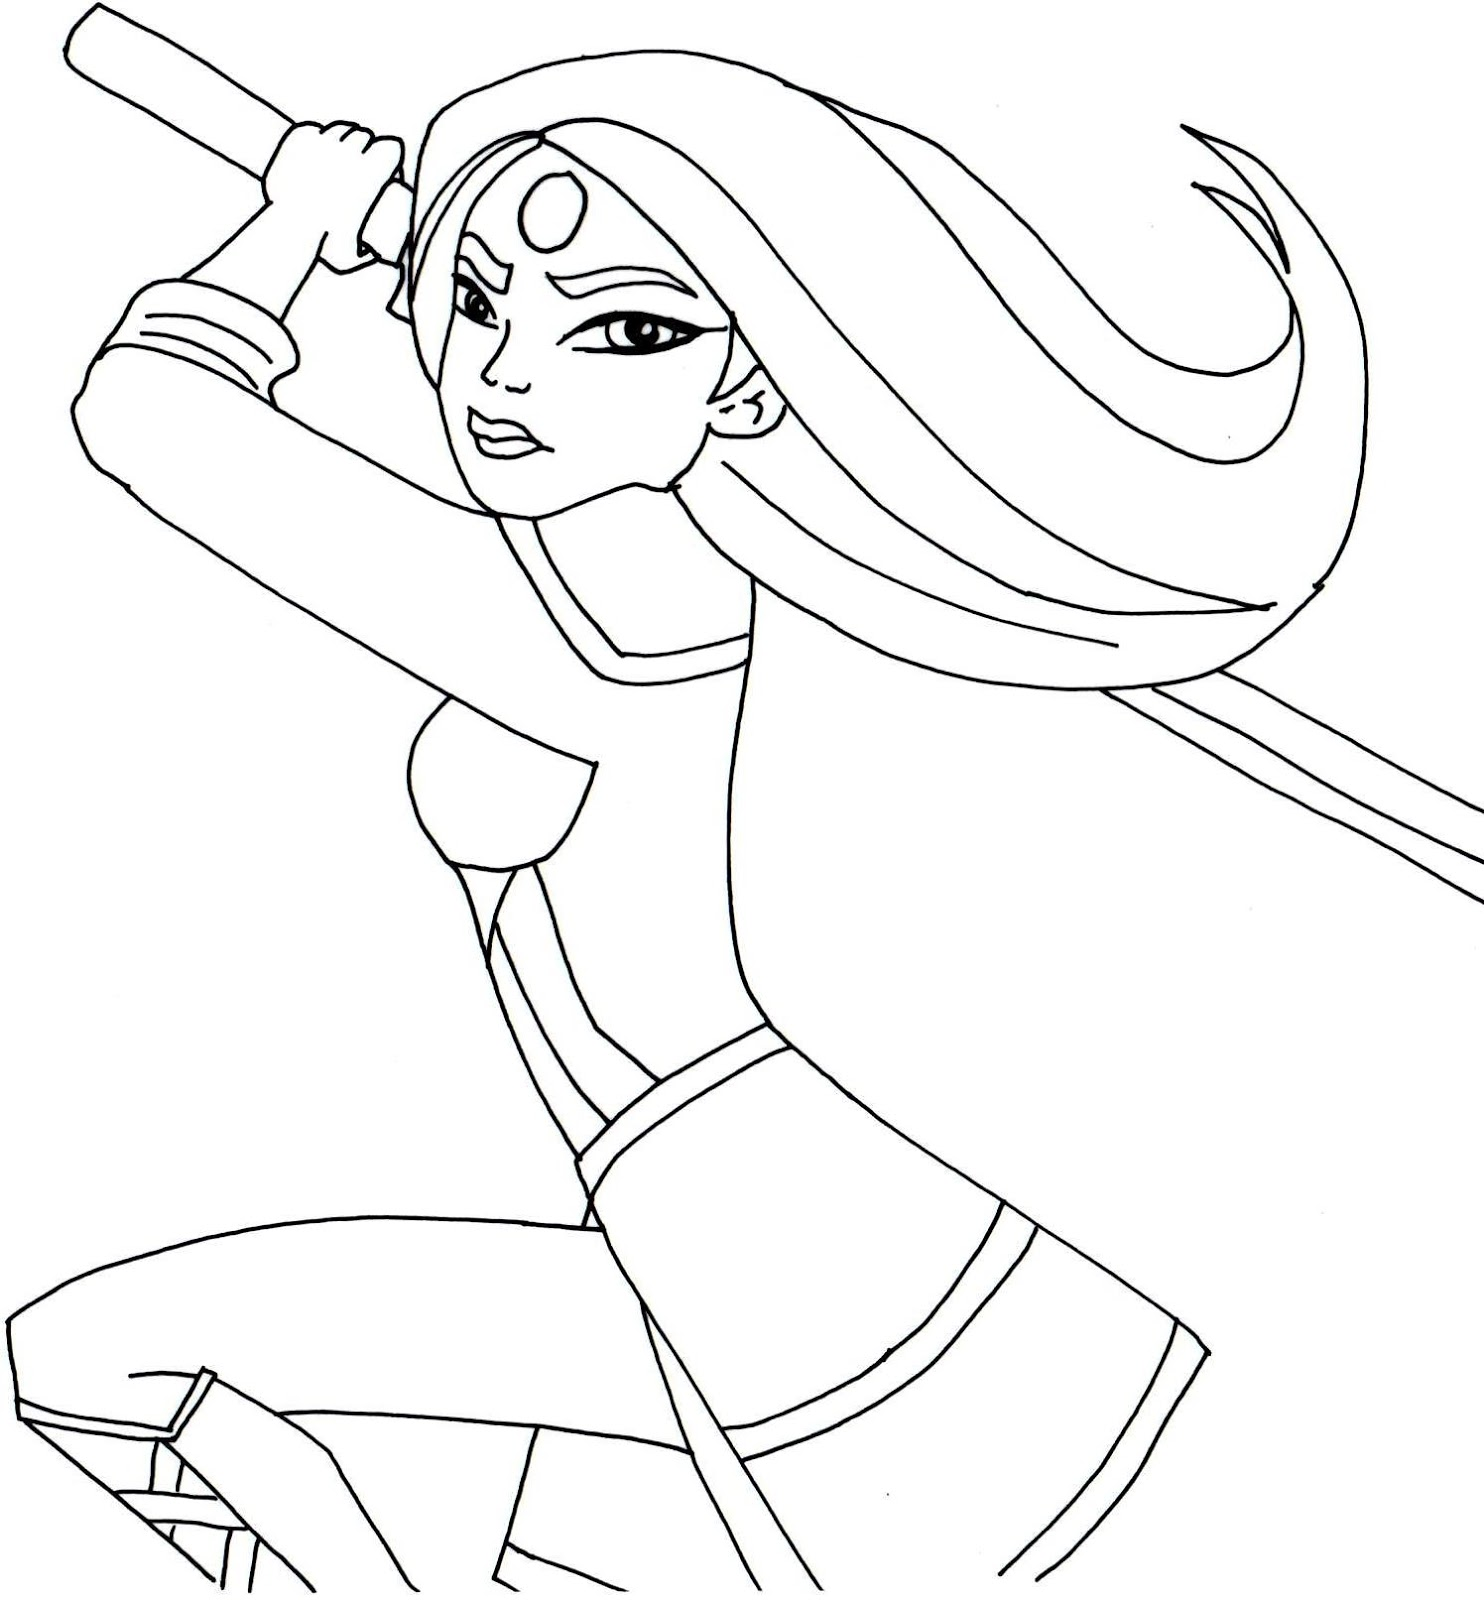 Starfire free coloring pages on art coloring pages - Free Printable Super Hero High Coloring Page For Katana One Of My Favorite Actually I Love All Of Them